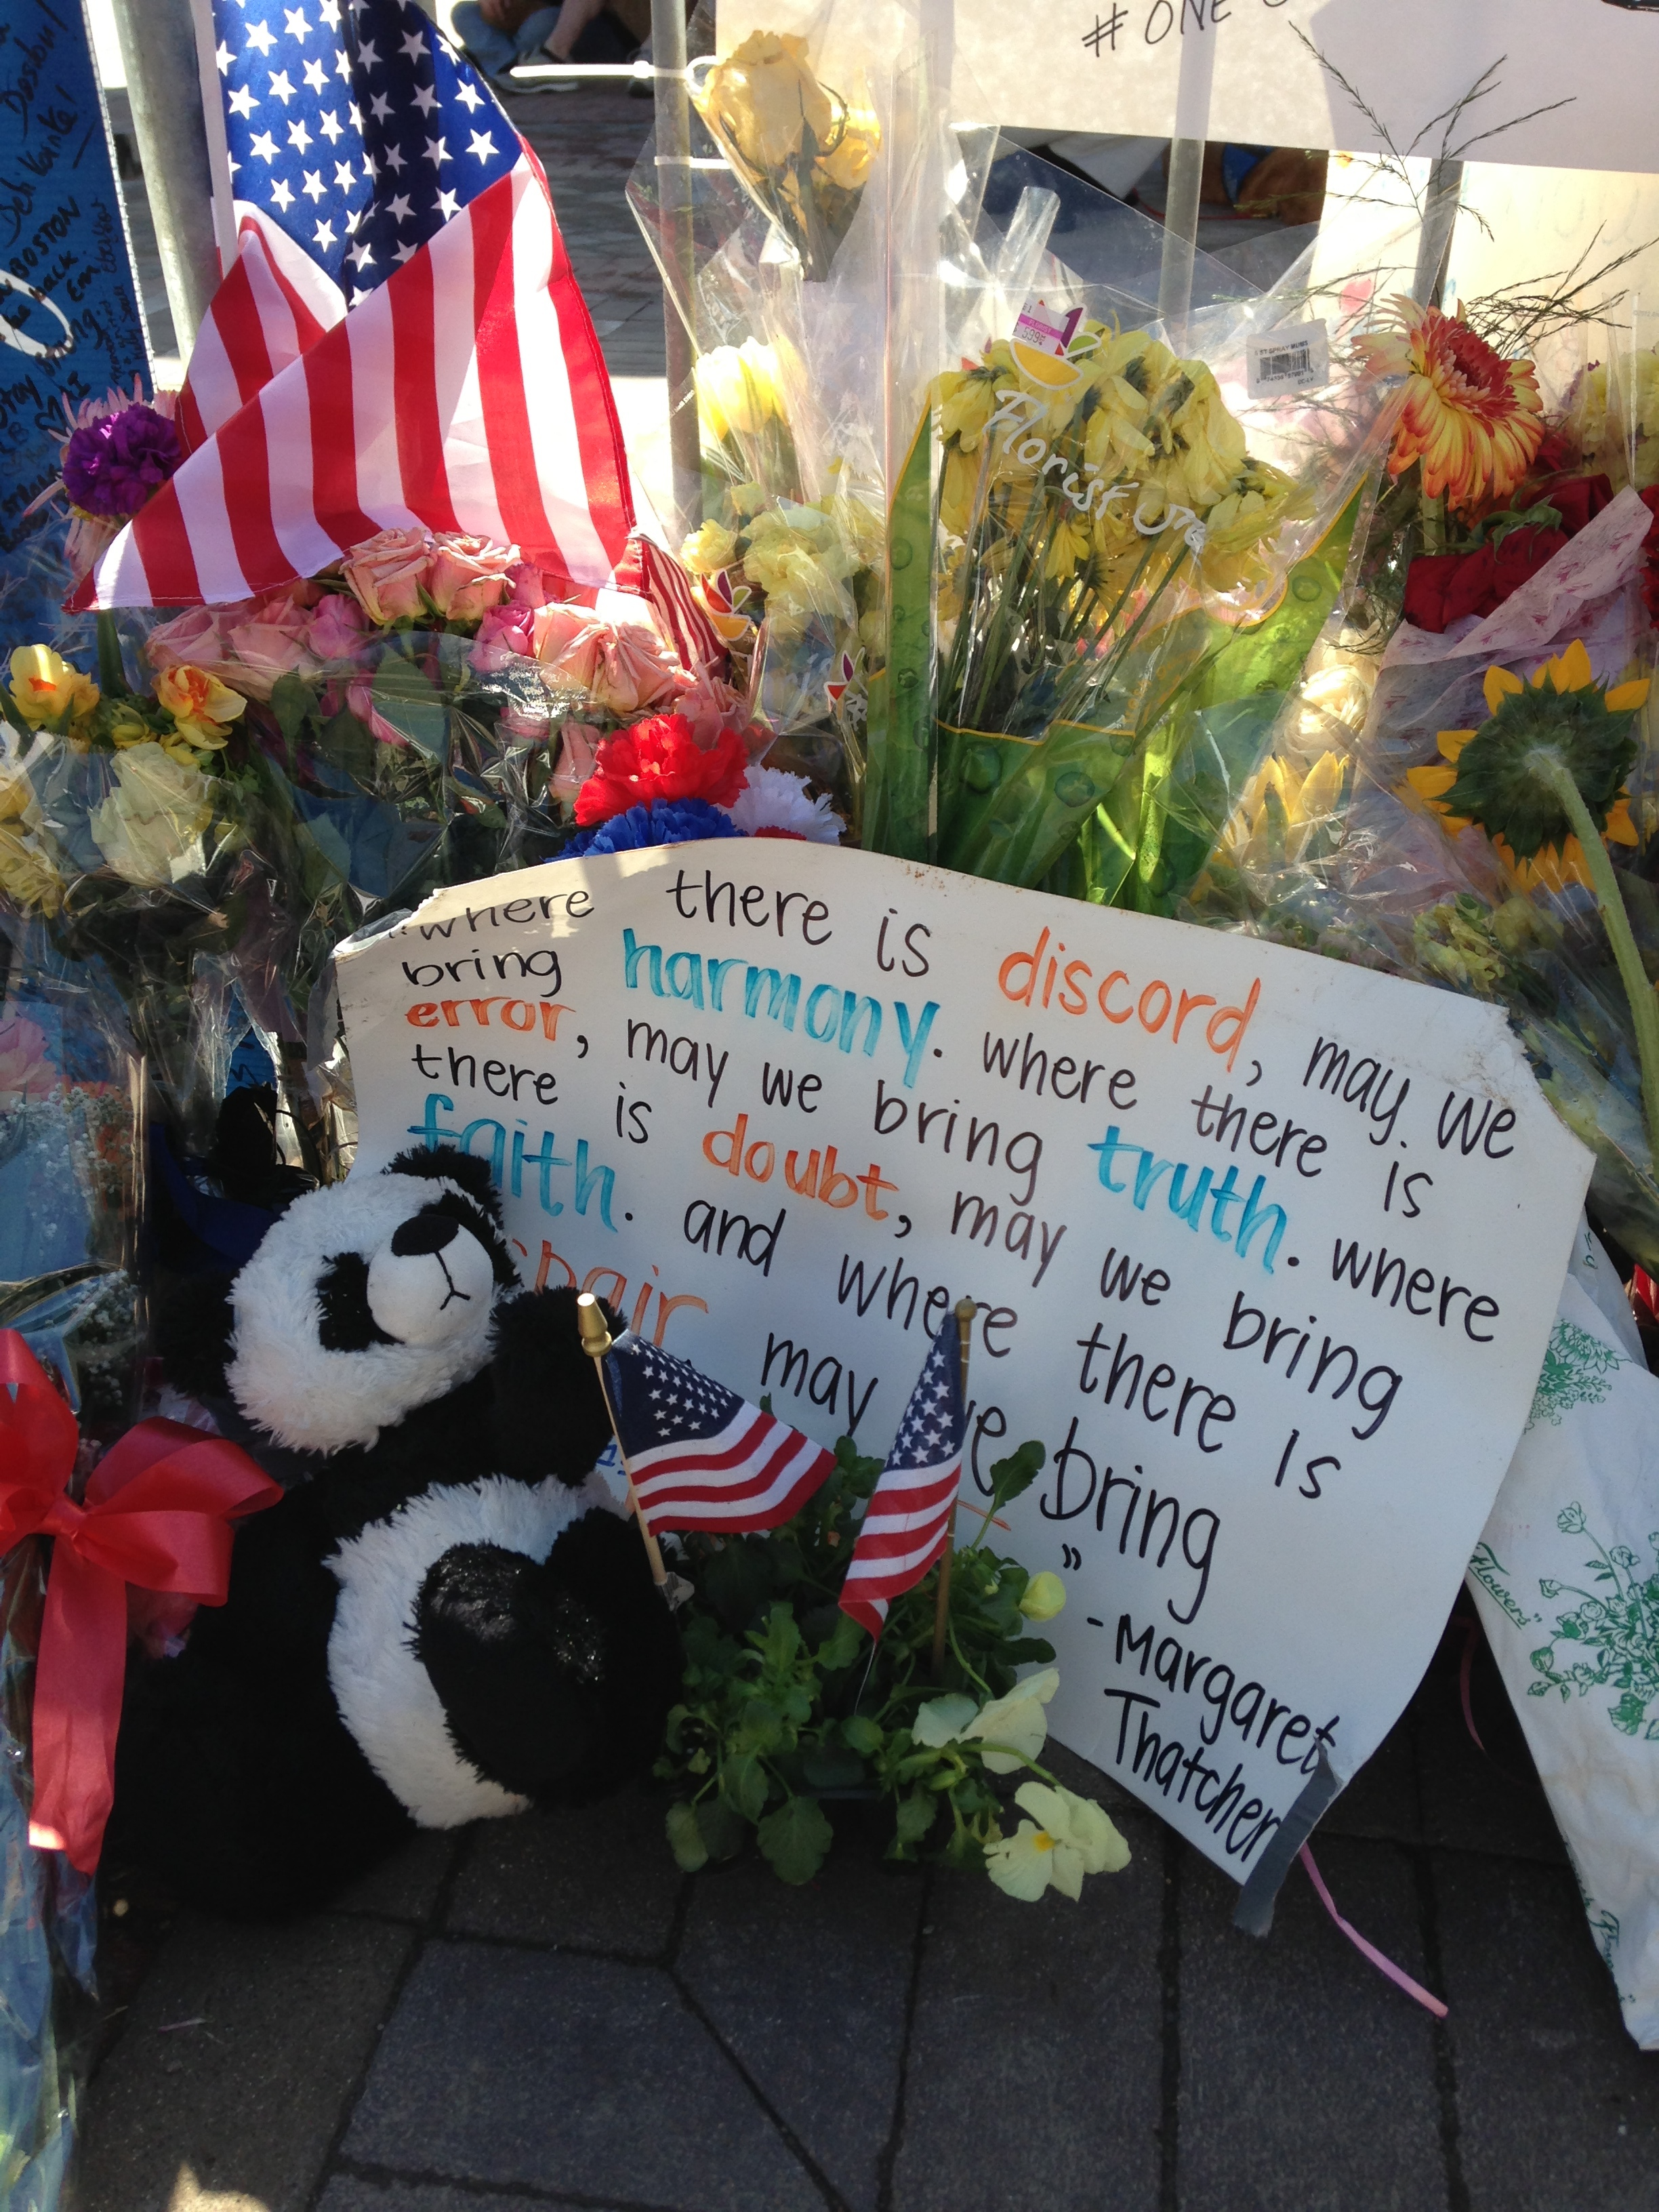 Flowers and cards from the site of the bombing.